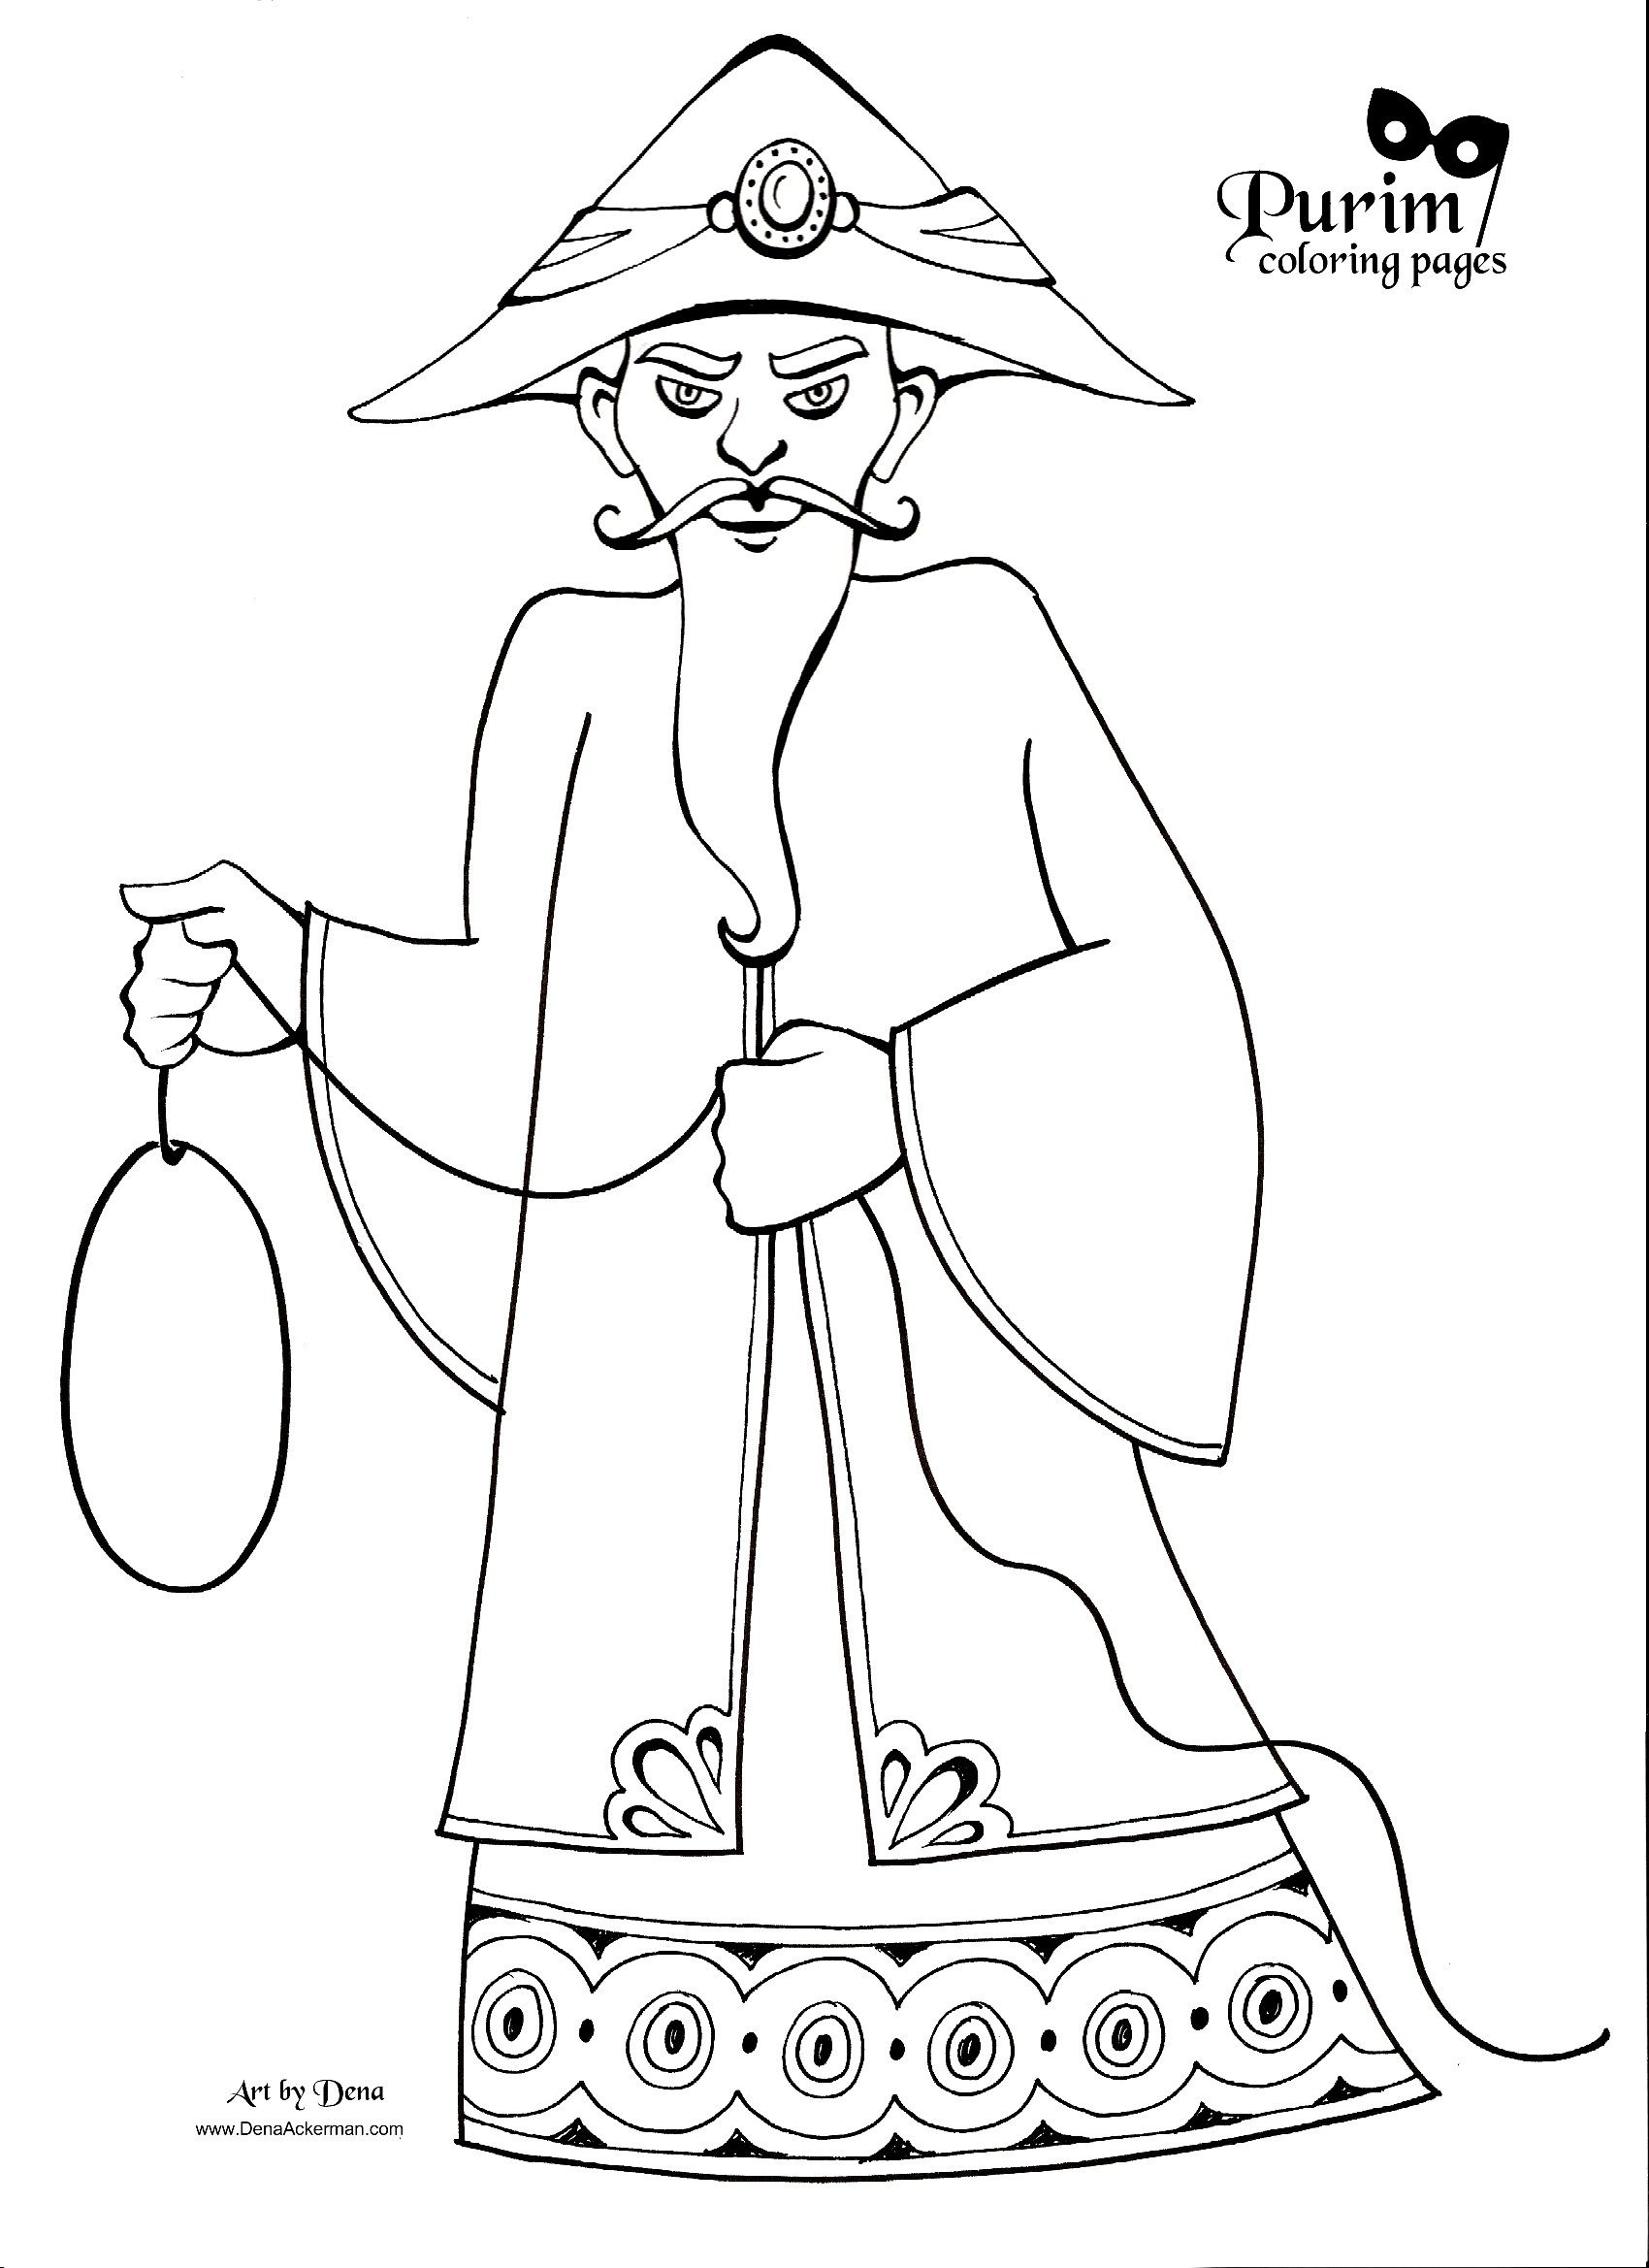 Purim Coloring Pages Coloring Pages Purim Bible Coloring Pages